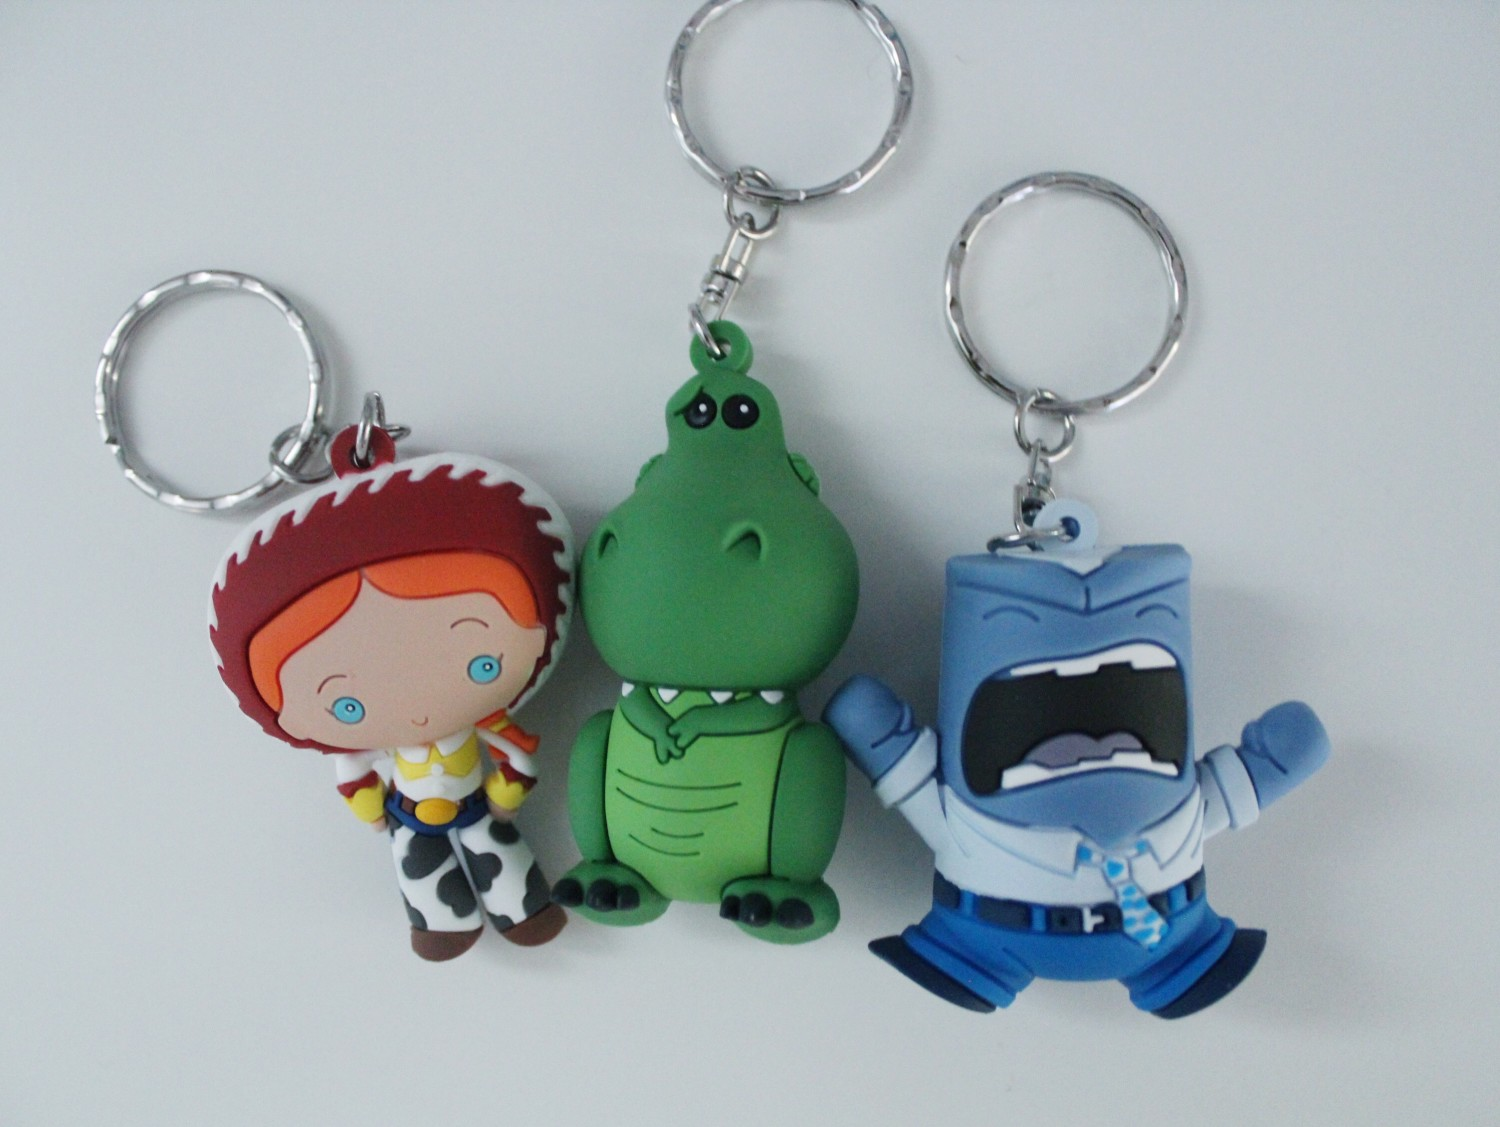 Disney Figural Keyring Series 6 blind bag